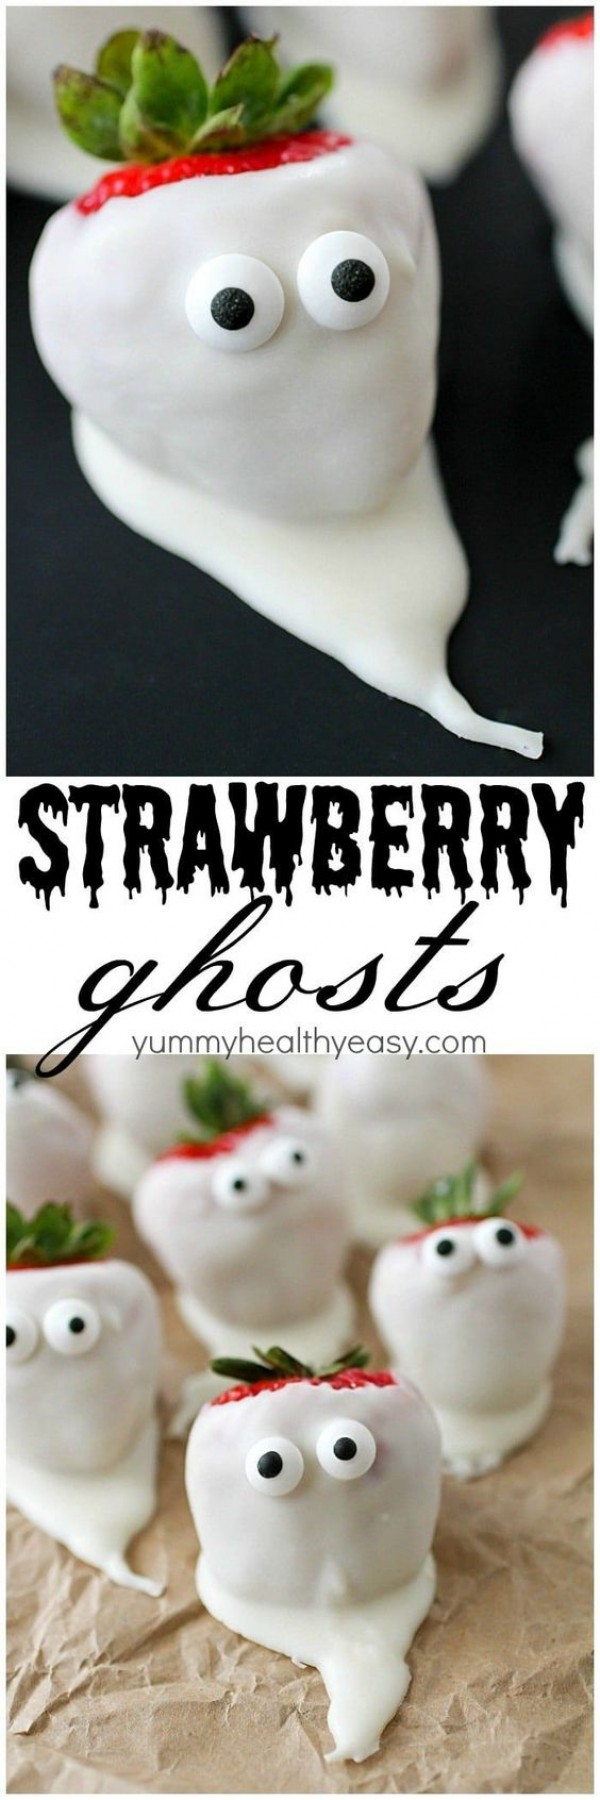 Get the recipe Strawberry Ghosts @recipes_to_go